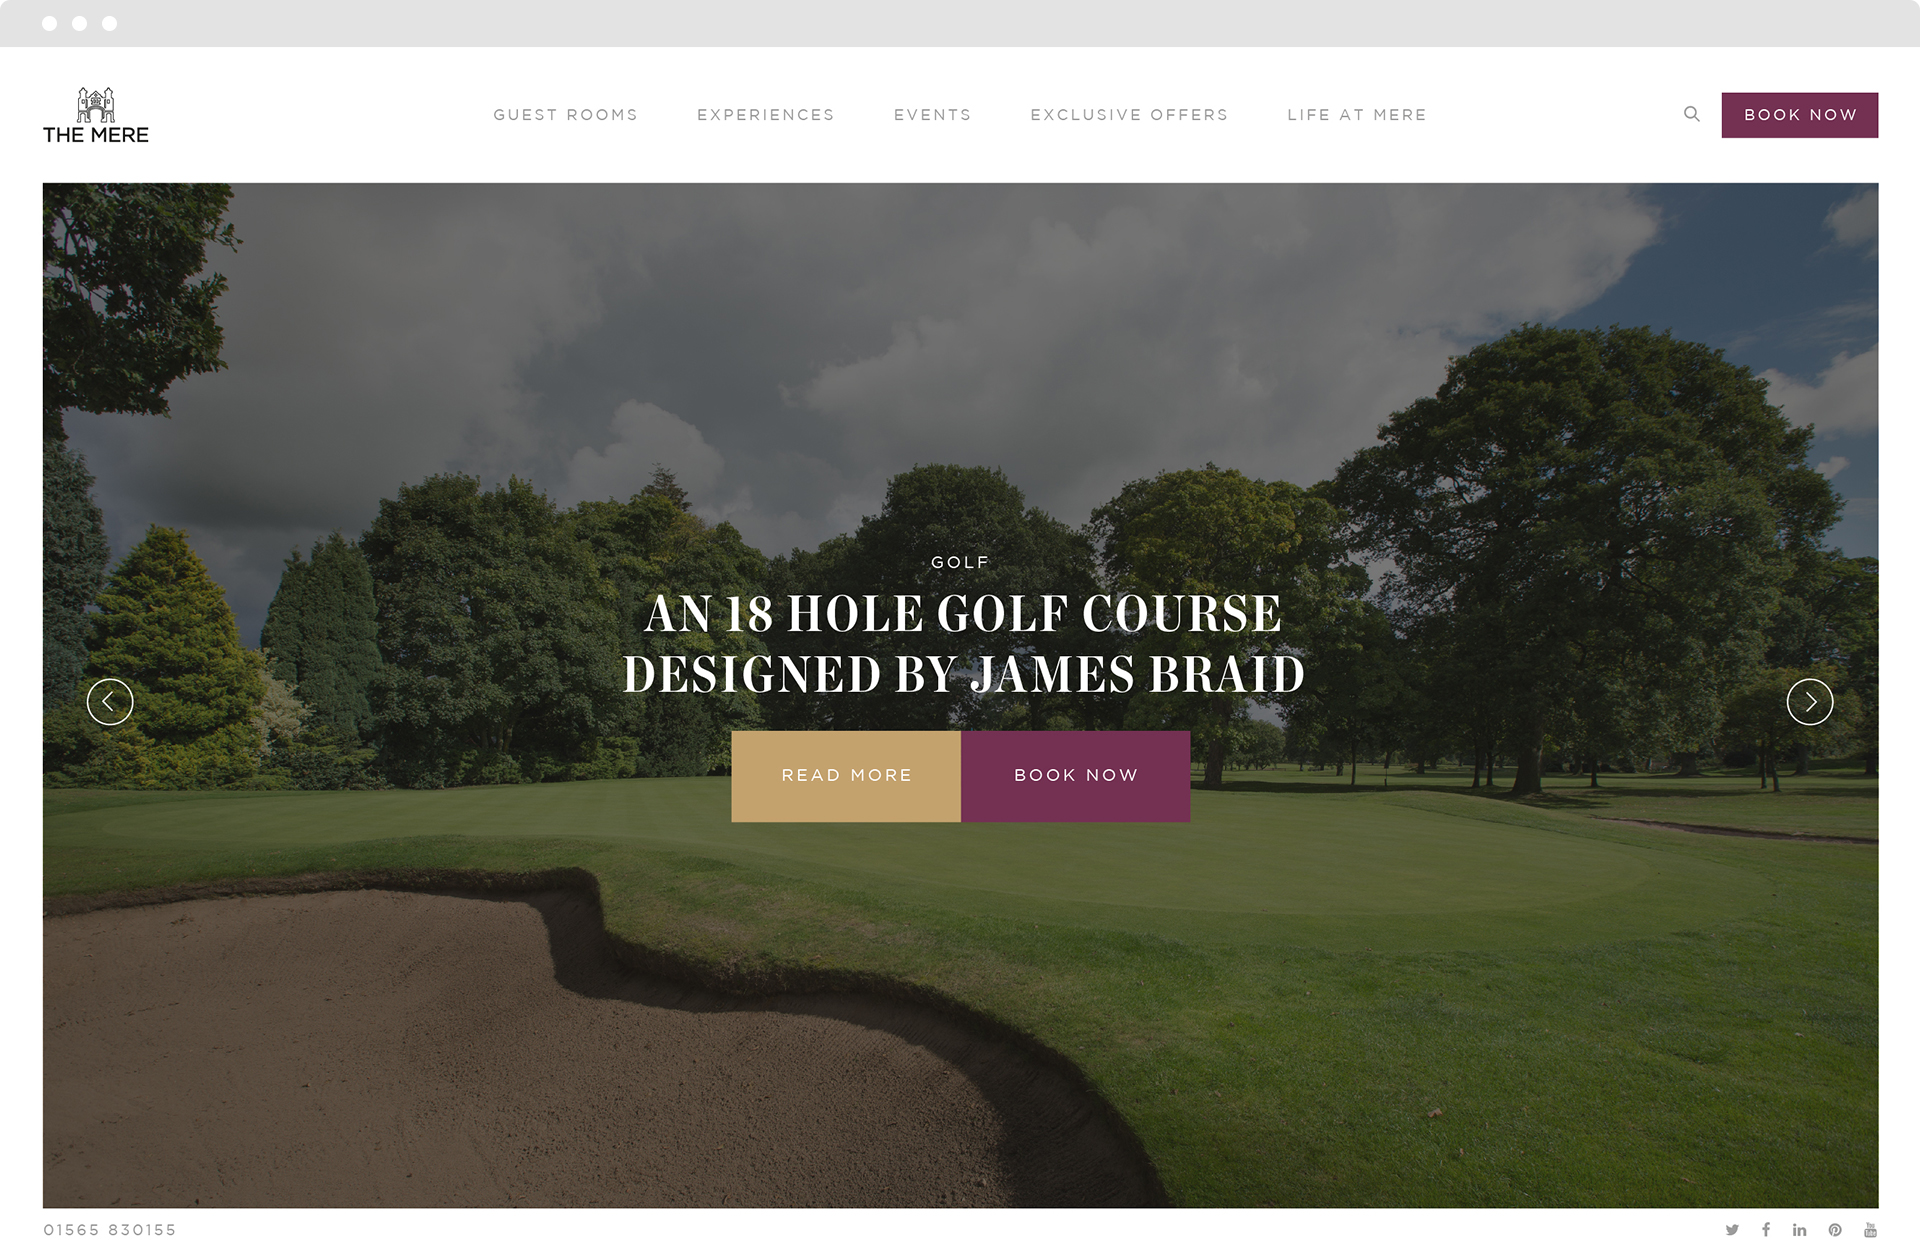 The Mere homepage